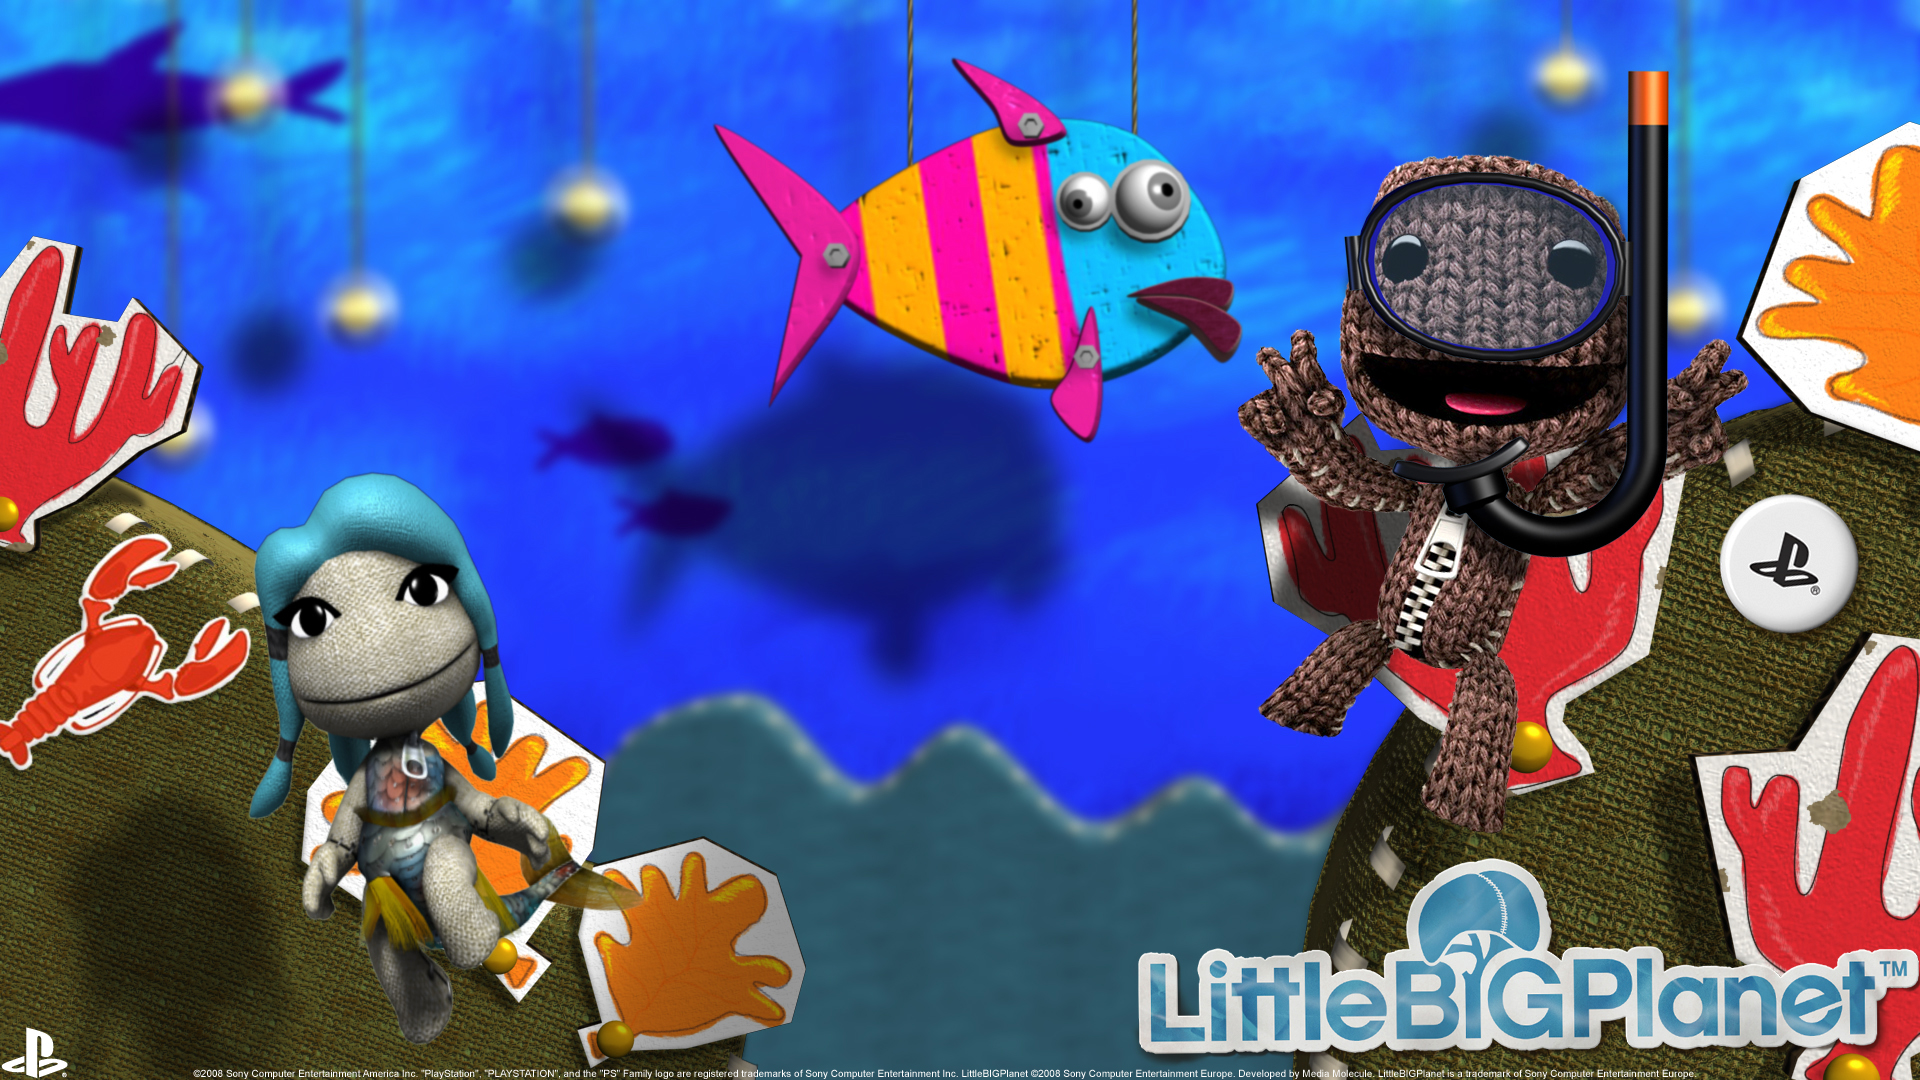 littlebigplanet-wallpaper-underwater-1920x1080